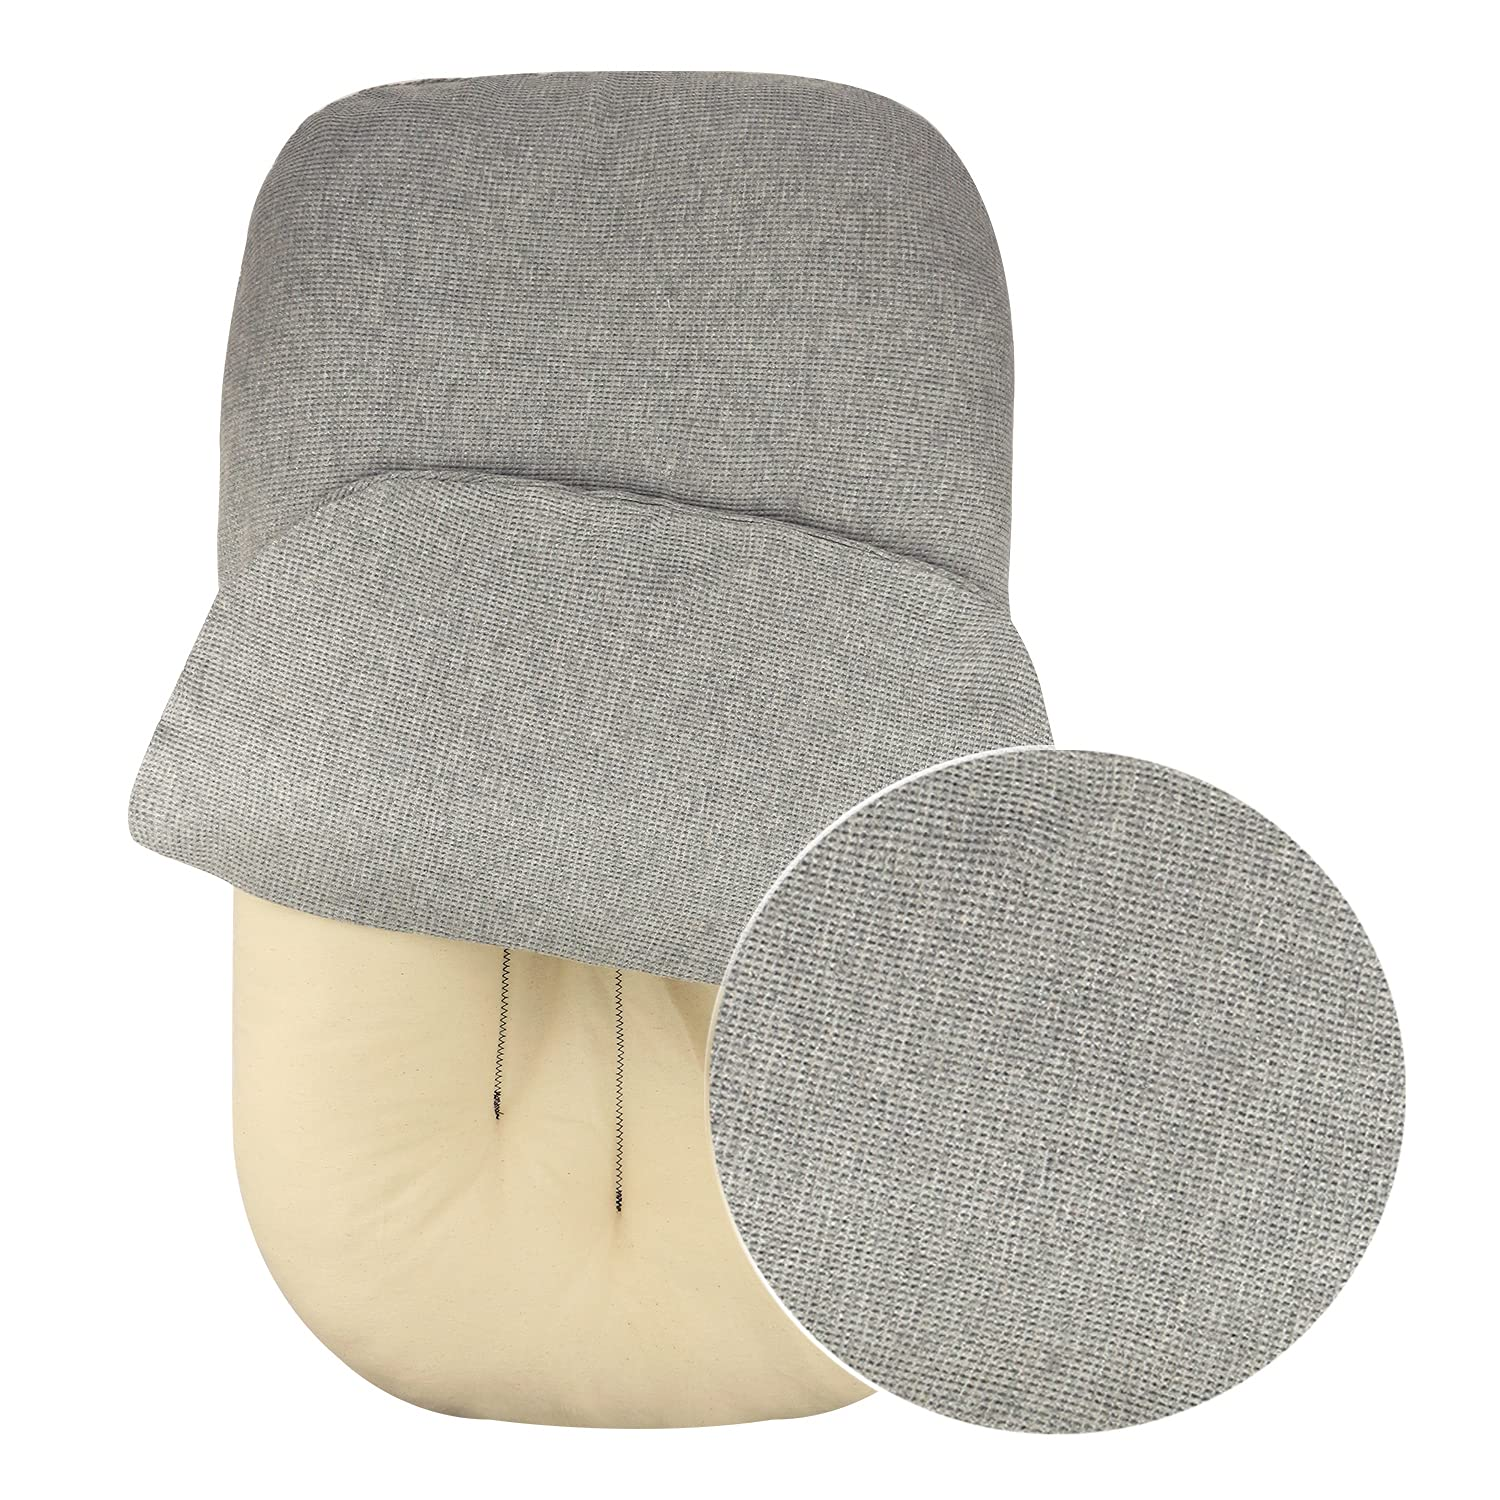 NoomiNest Baby Lounger Cover ONLY | 100% Waffle Cotton (Stone Gray)